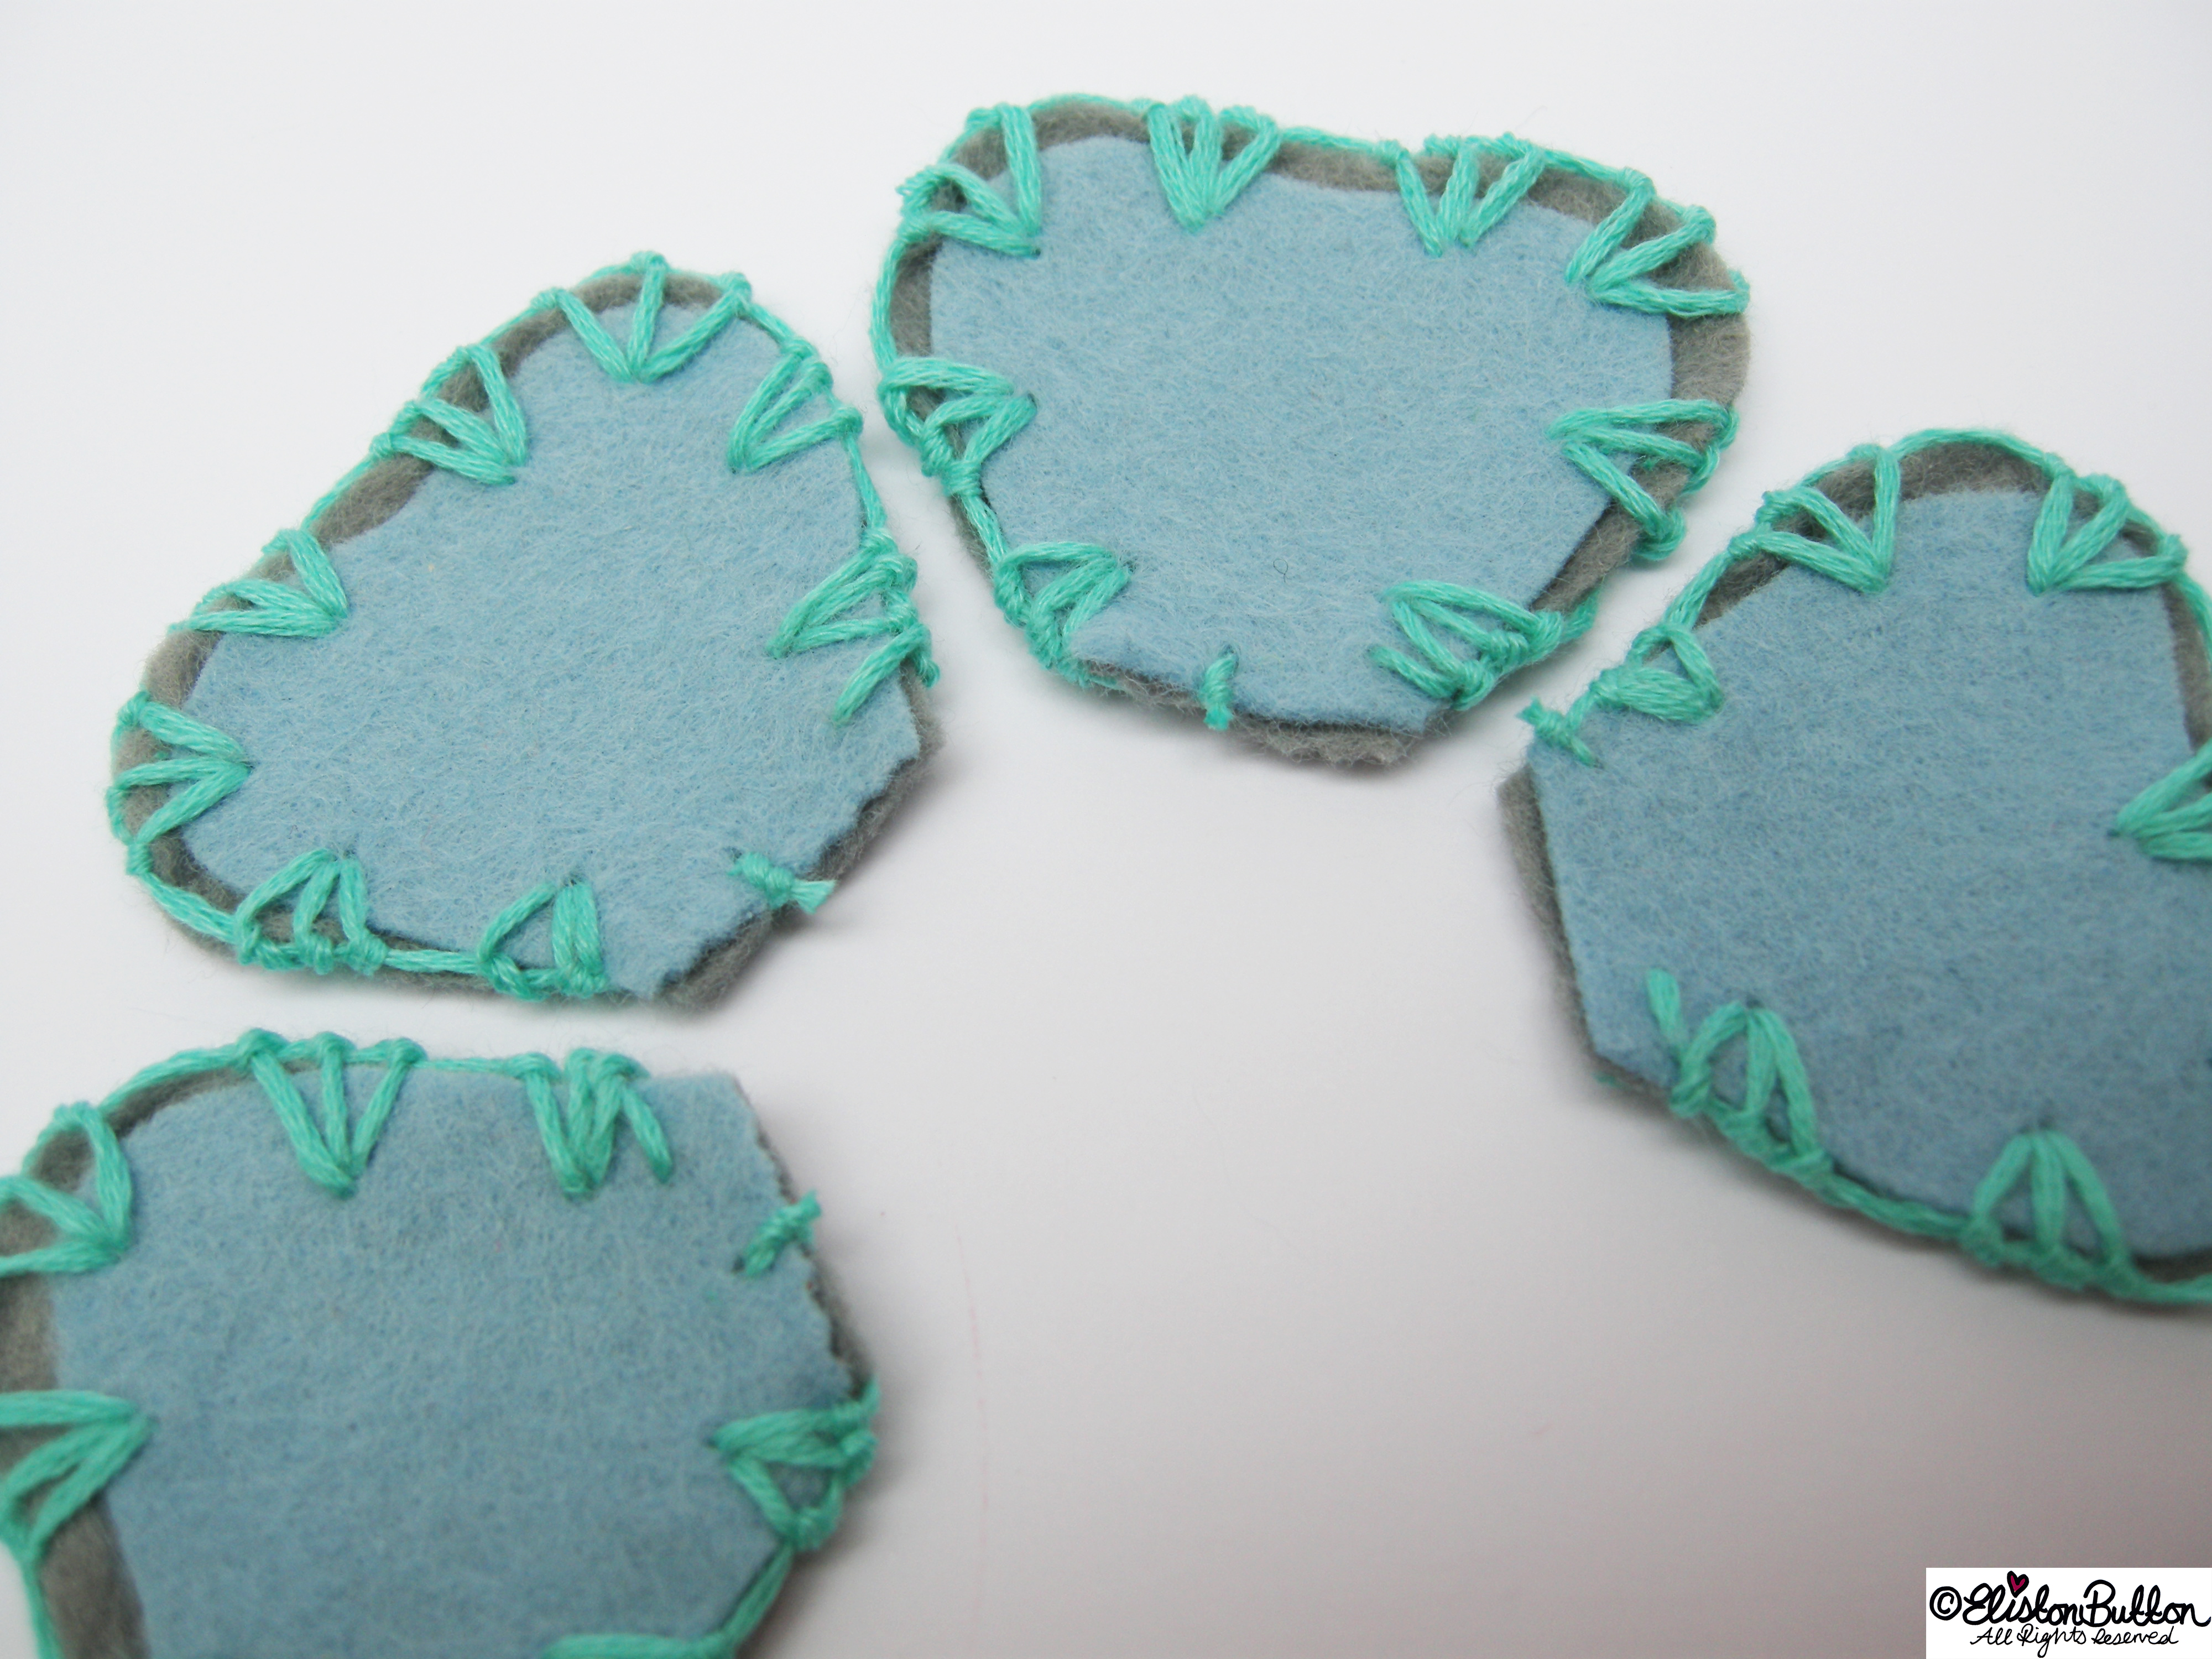 Pastel Blue and Grey Felt Petal Shapes Embroidered with Turquoise Embroidery Thread  - All Together - 27 Before 27 – Aquamarine at www.elistonbutton.com - Eliston Button - That Crafty Kid – Art, Design, Craft & Adventure.